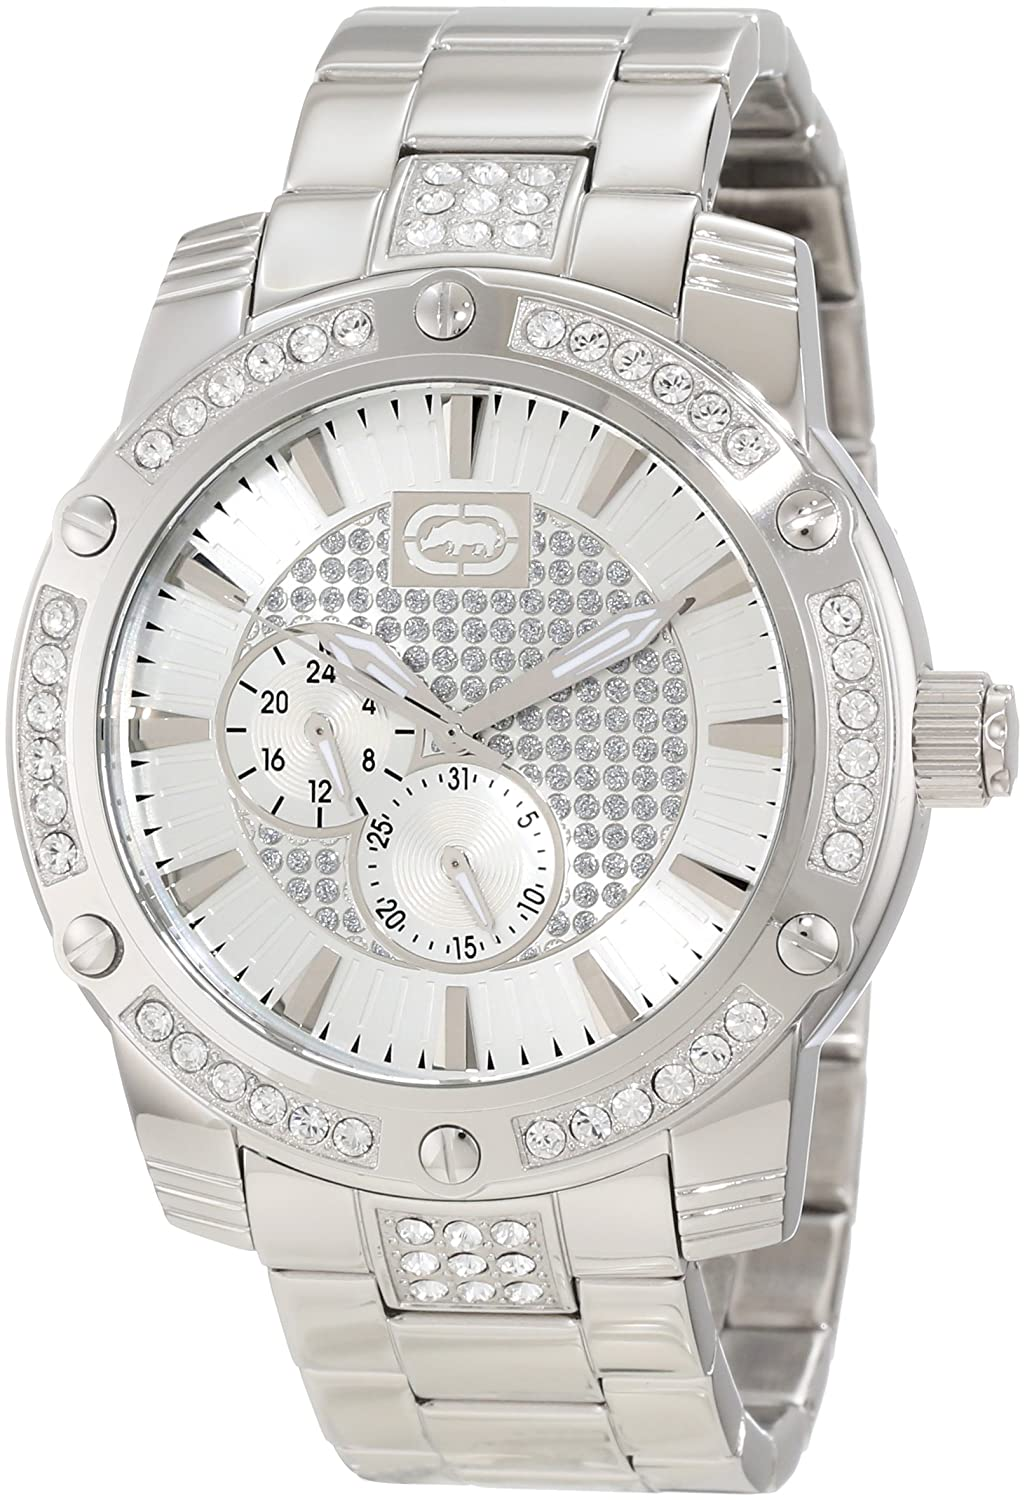 Marc Ecko Men&#8217;s E17504G1 The Possession Classic Analog Watch $79.99